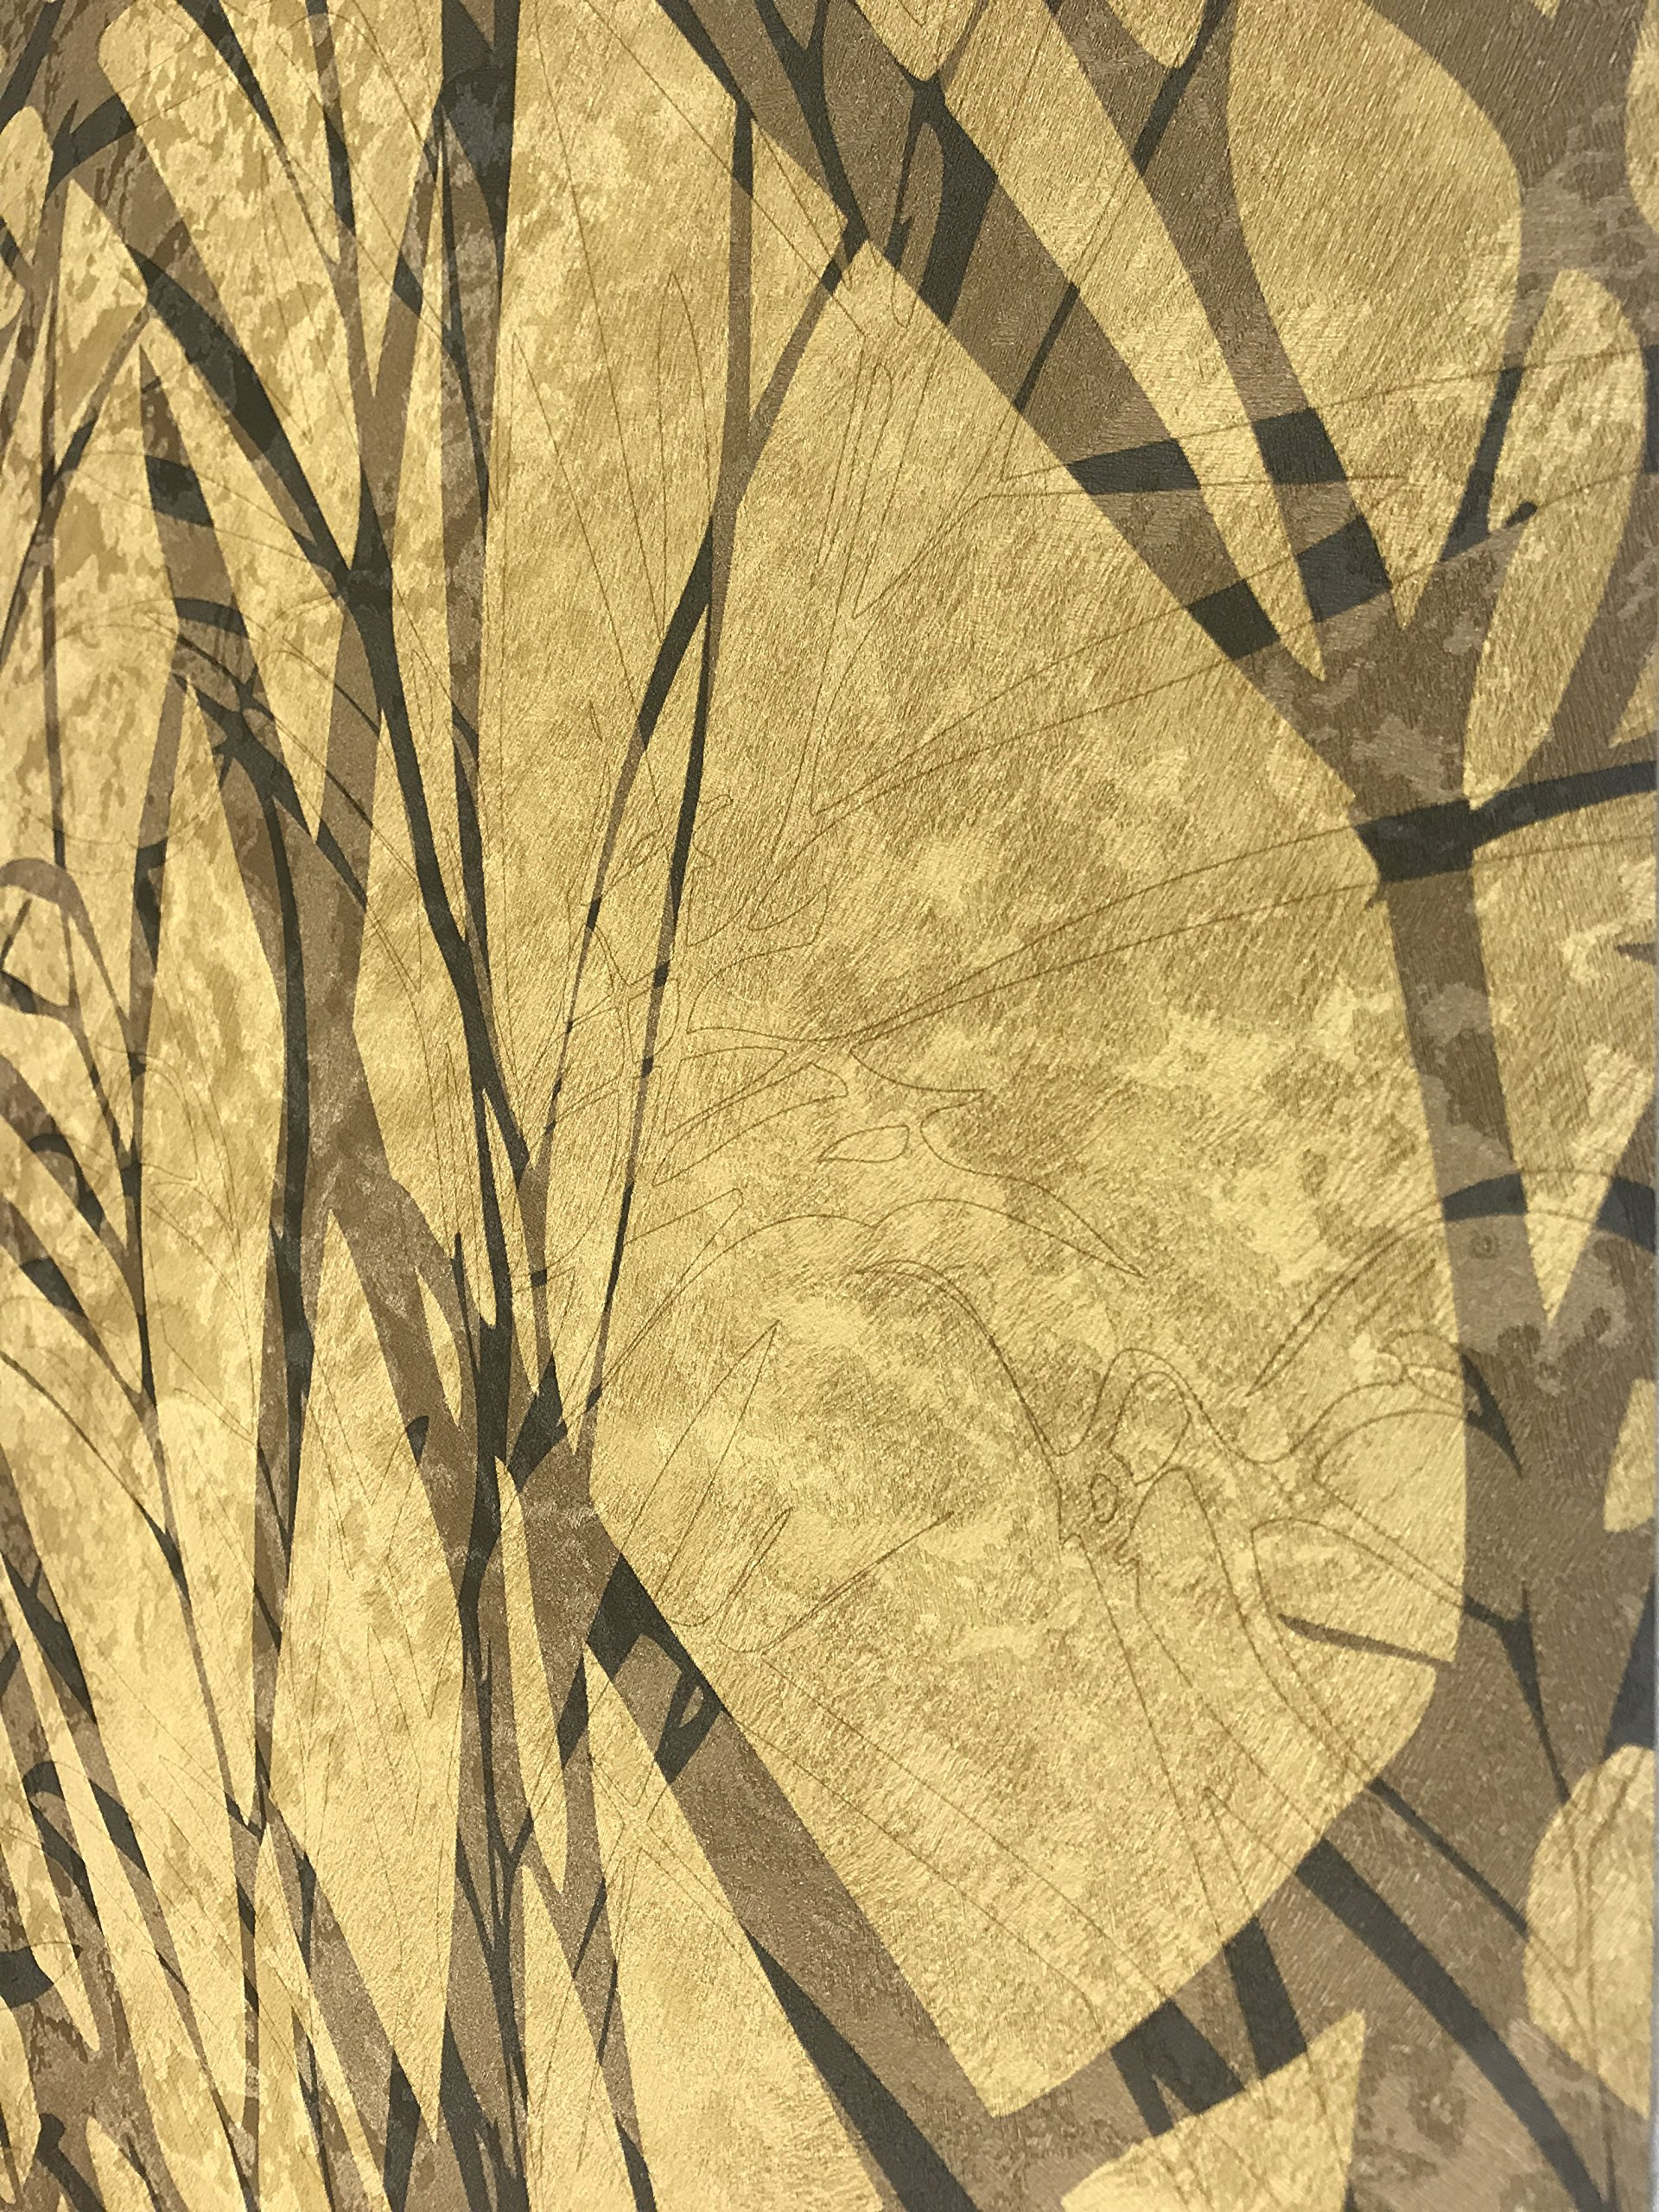 76 sq.ft Made in Italy Portofino wallcoverings rolls modern embossed Vinyl Non-Woven Wallpaper gold bronze black metallic wallpapers textured tropical tree leaves design texture 3D paste the wall only